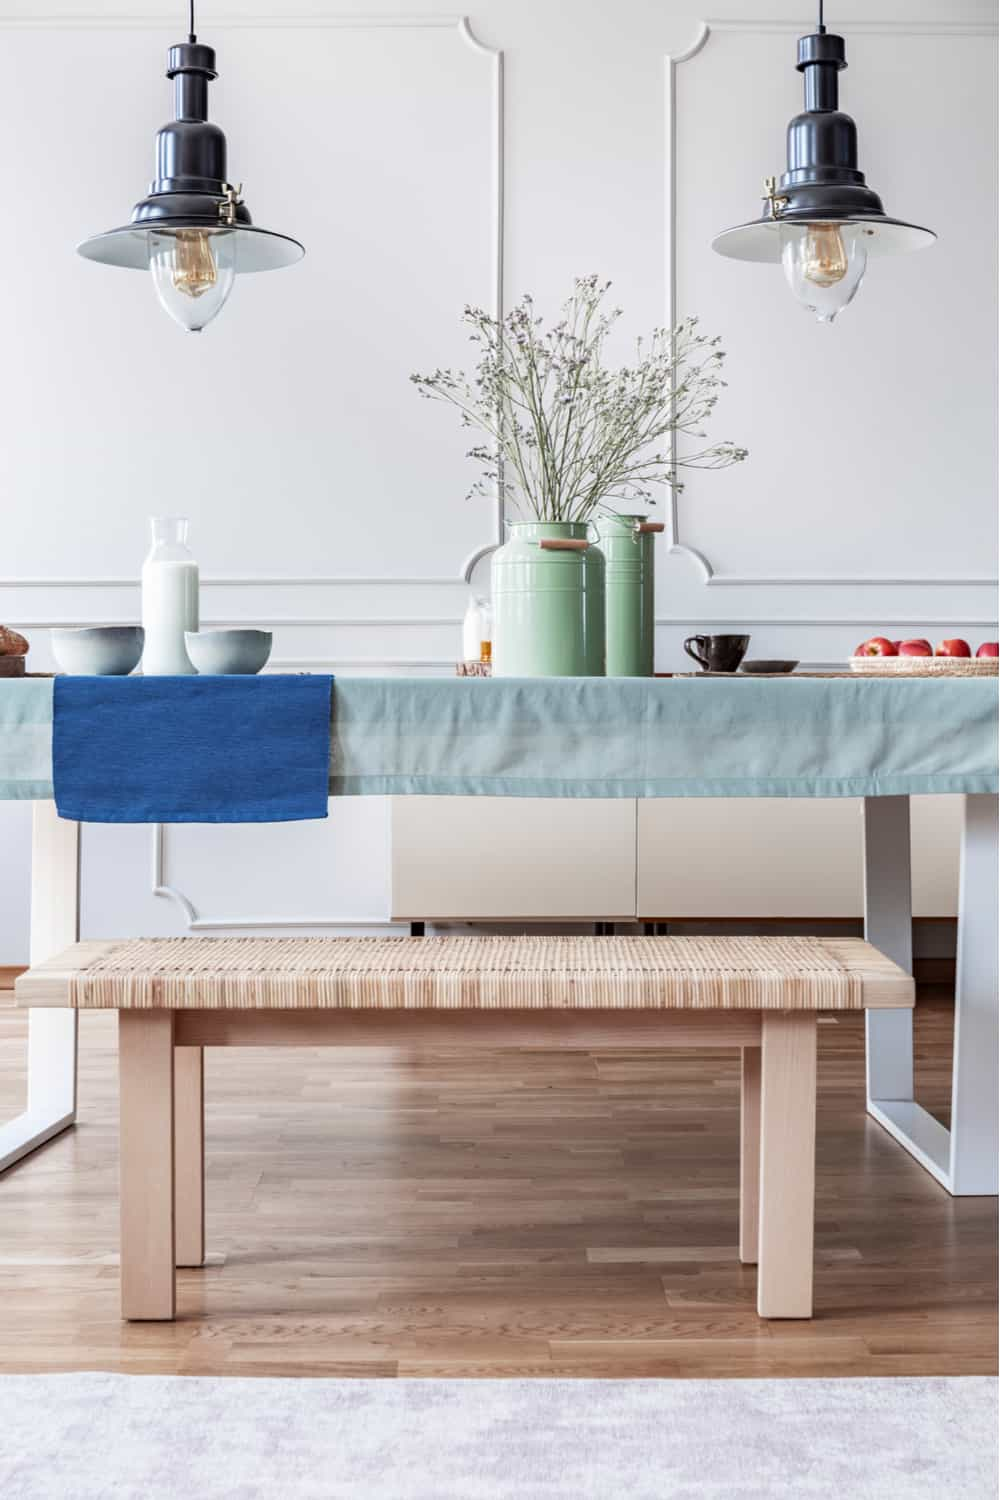 18 Homemade Dining Bench Plans You Can DIY Easily